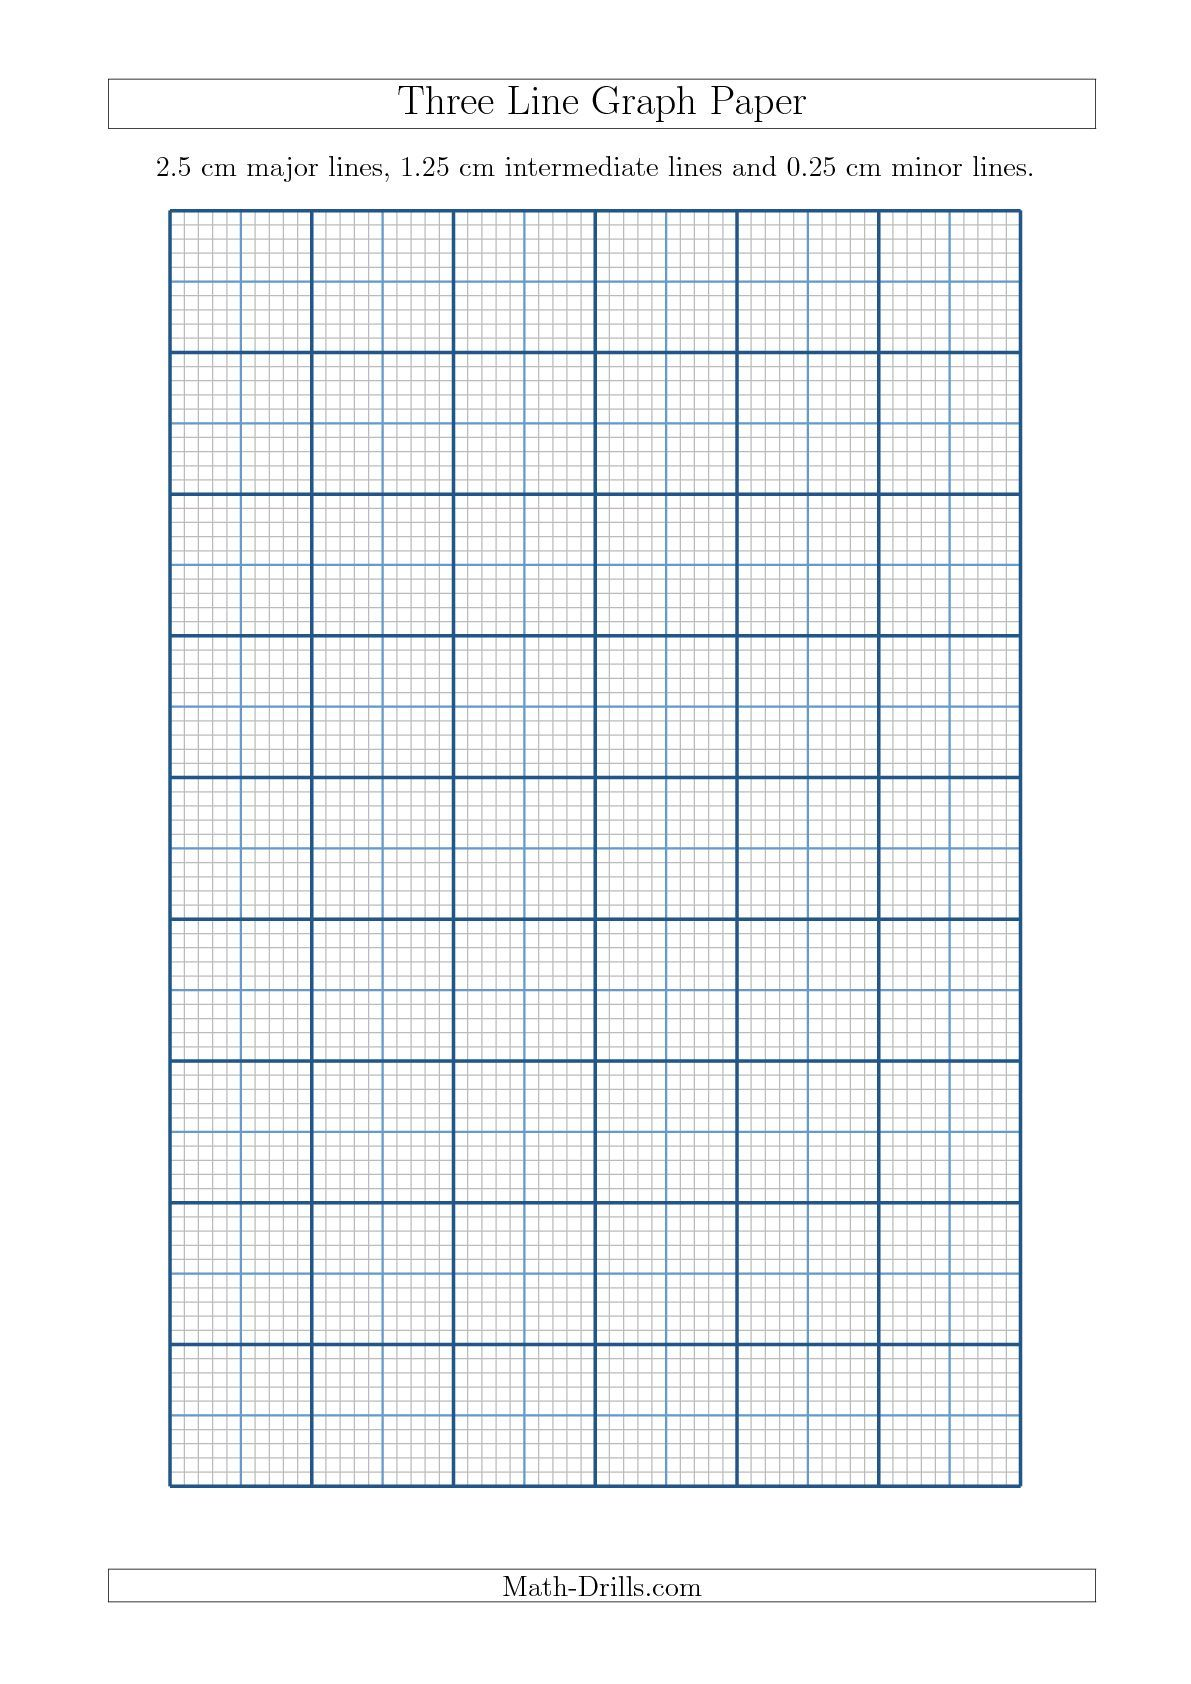 New A4 Sizes Added 09 18 Three Line Graph Paper With